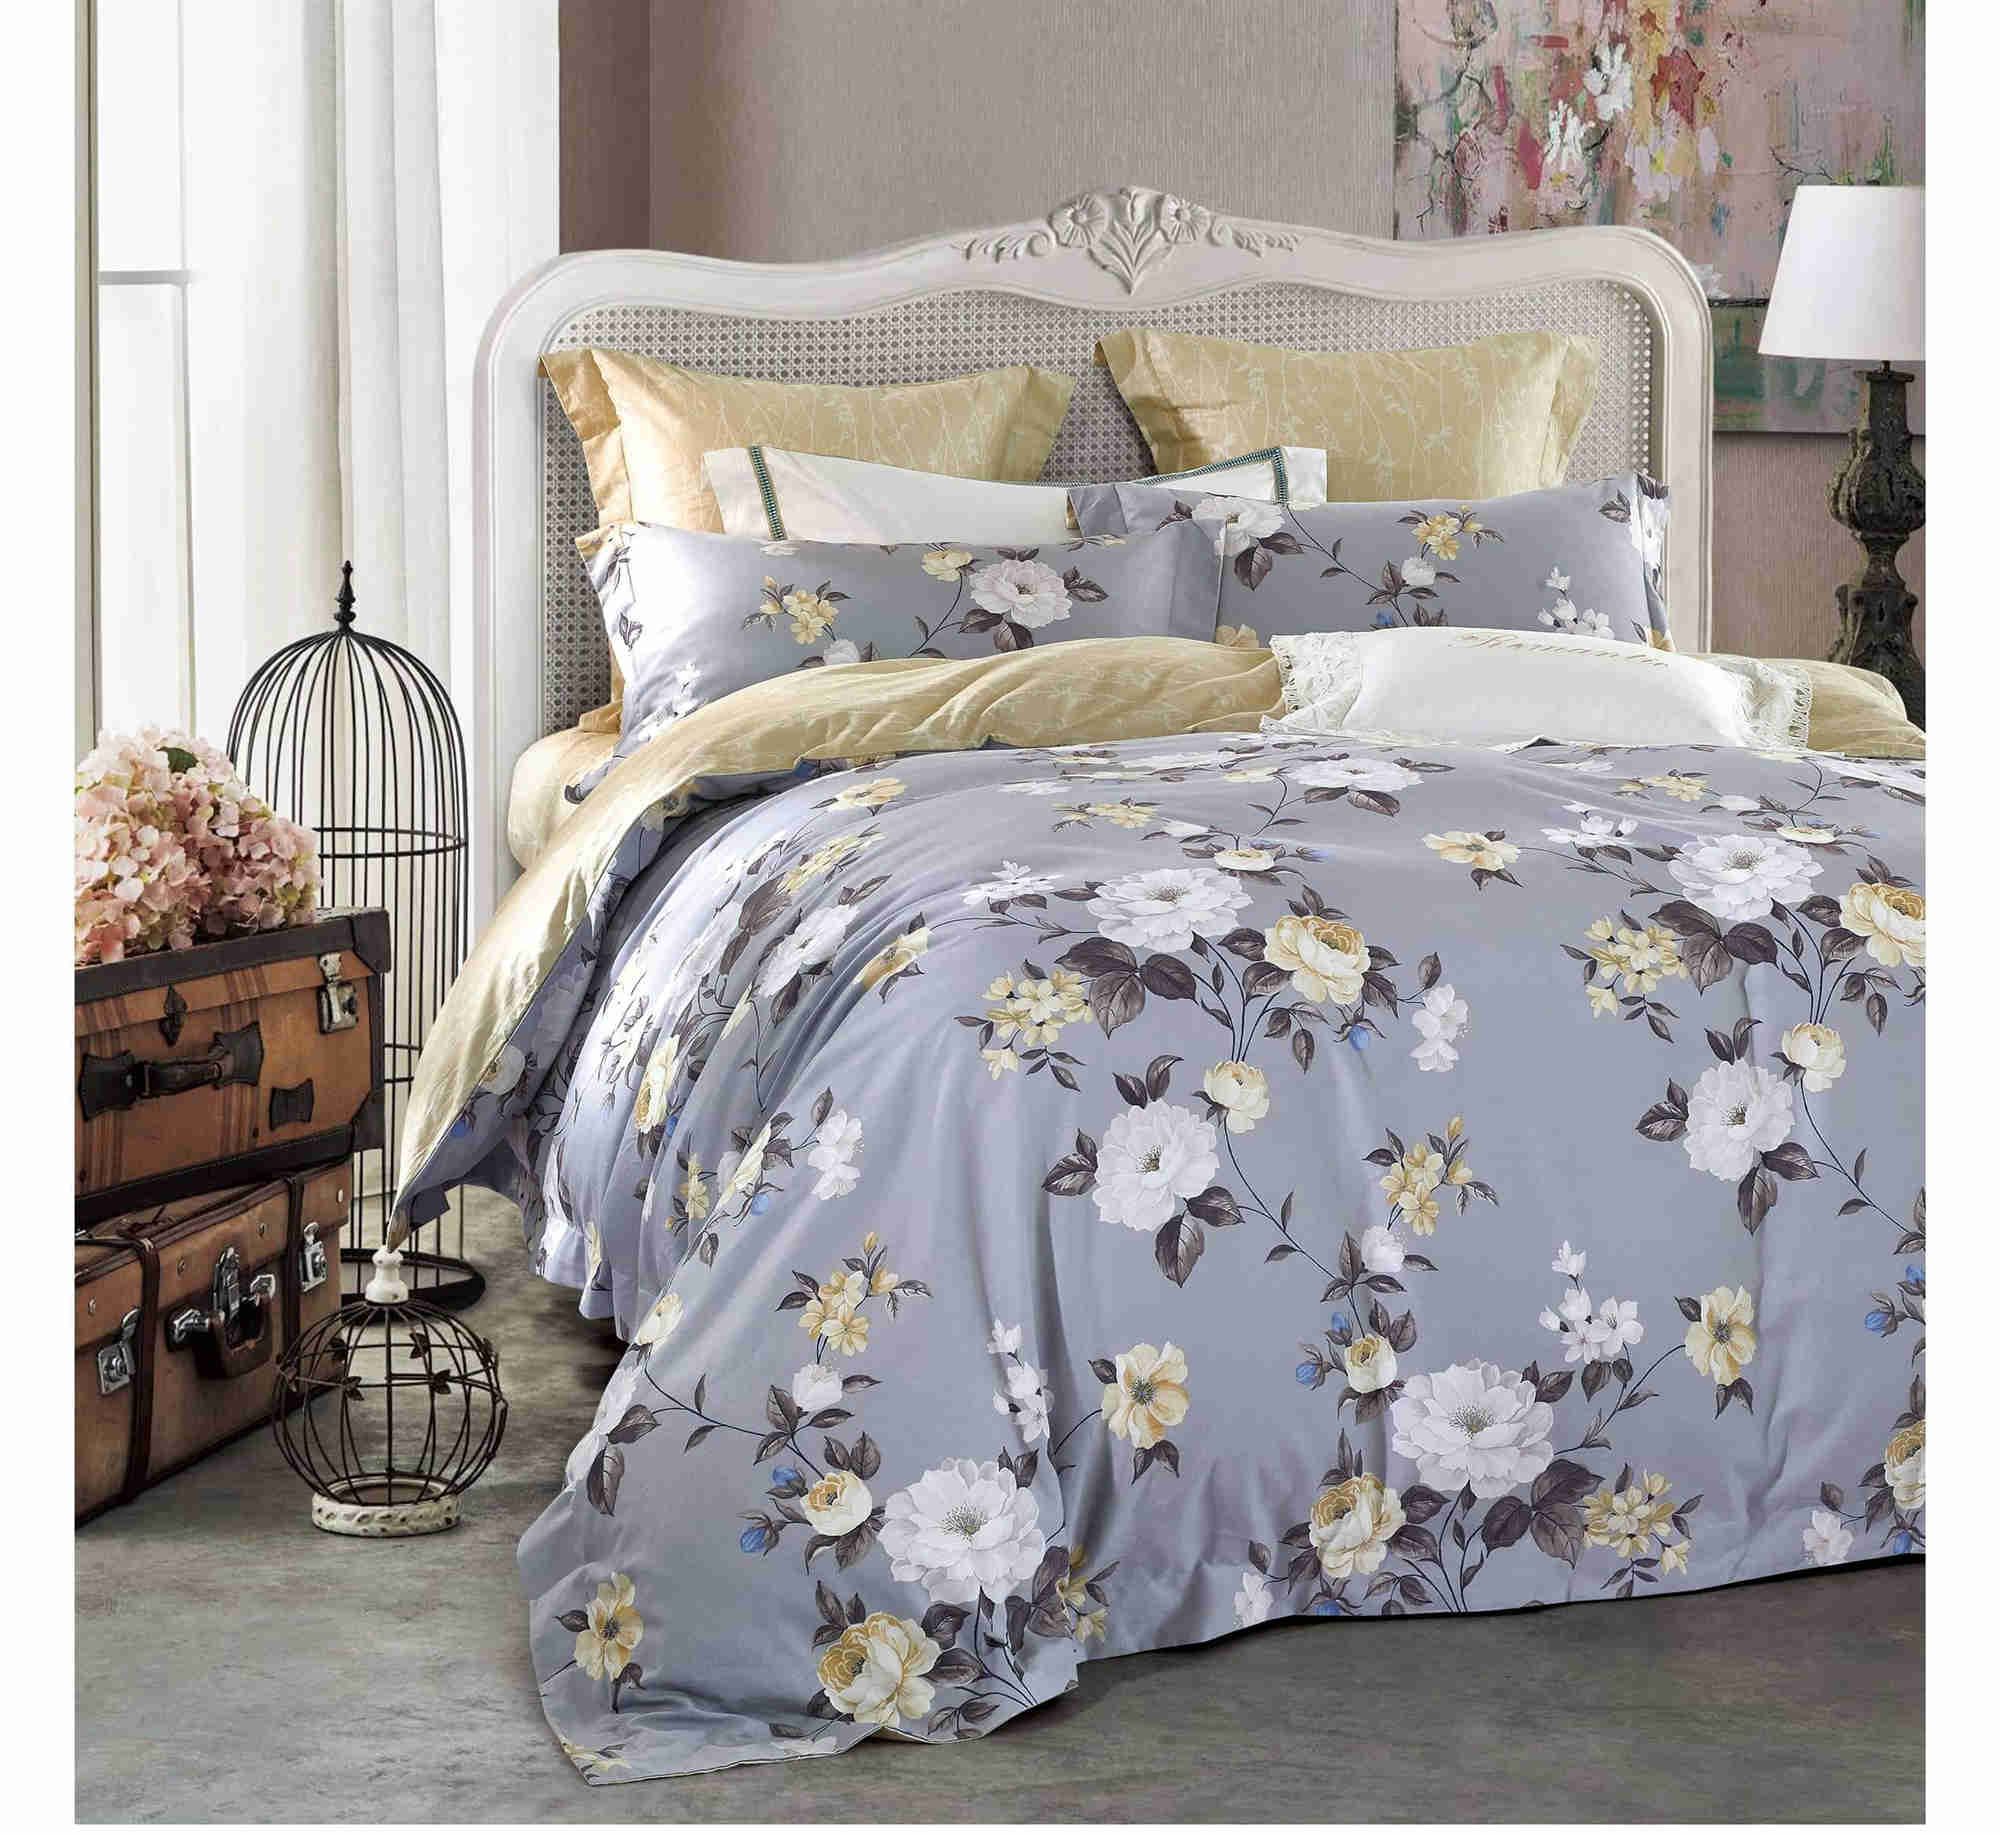 Beautiful Cotton Bedding Set with Duvet Cover